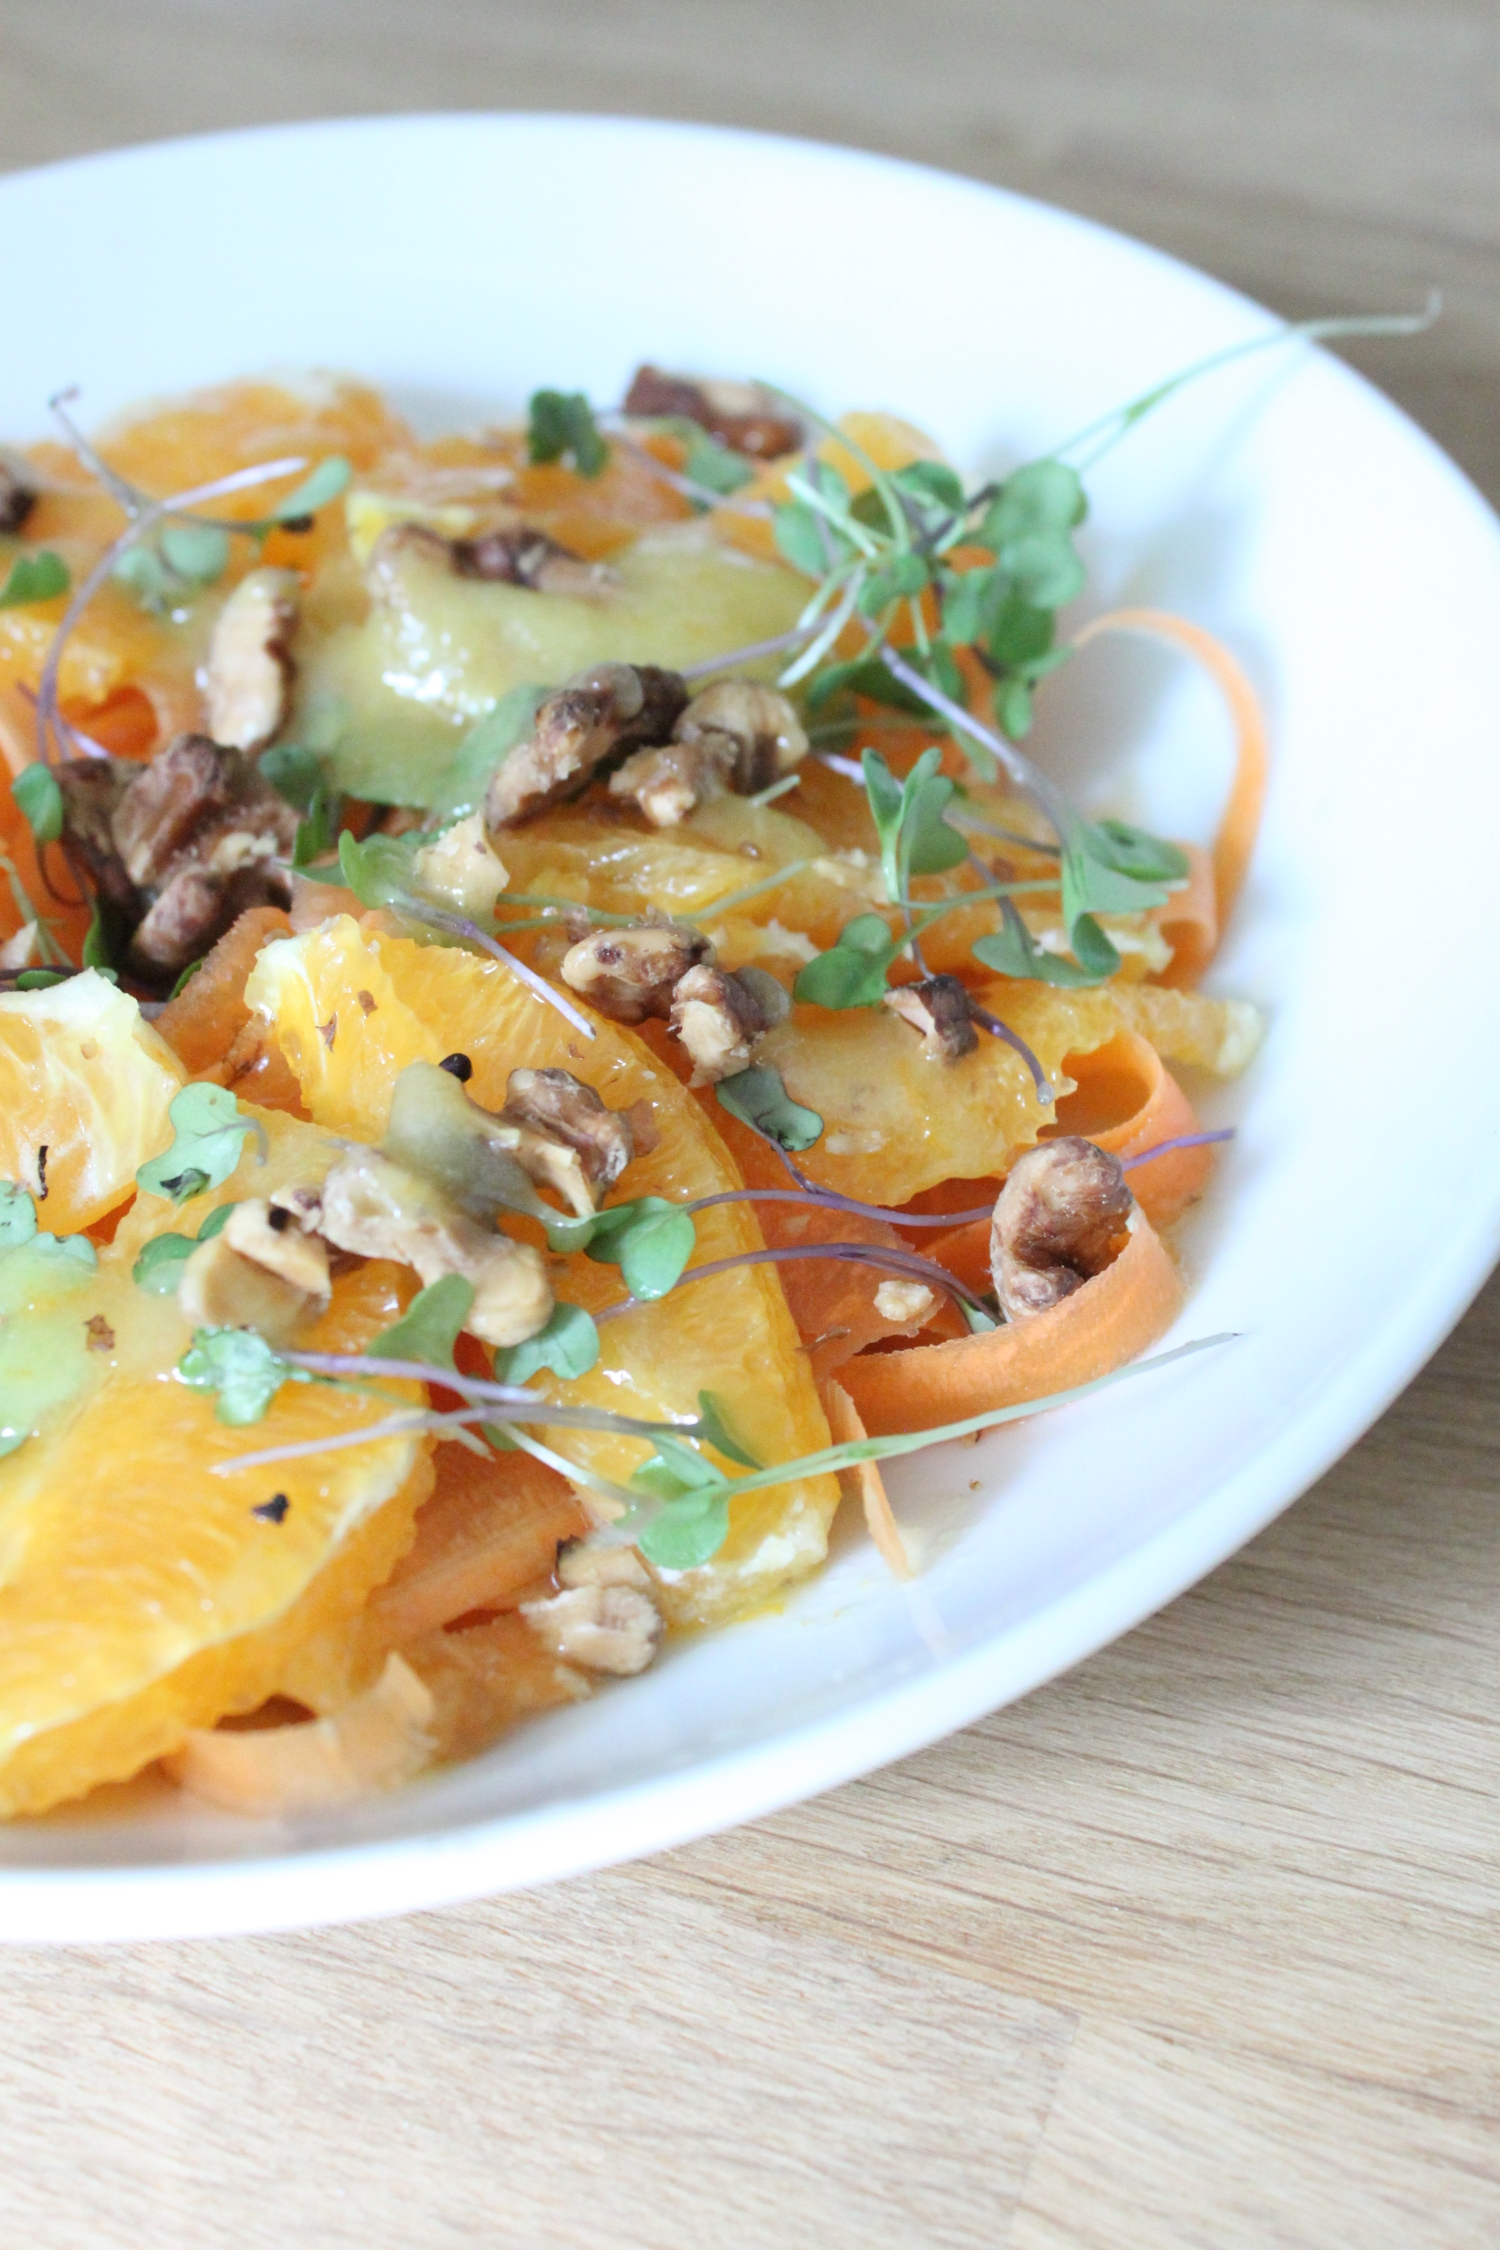 Carrot Orange Salad with Walnuts3